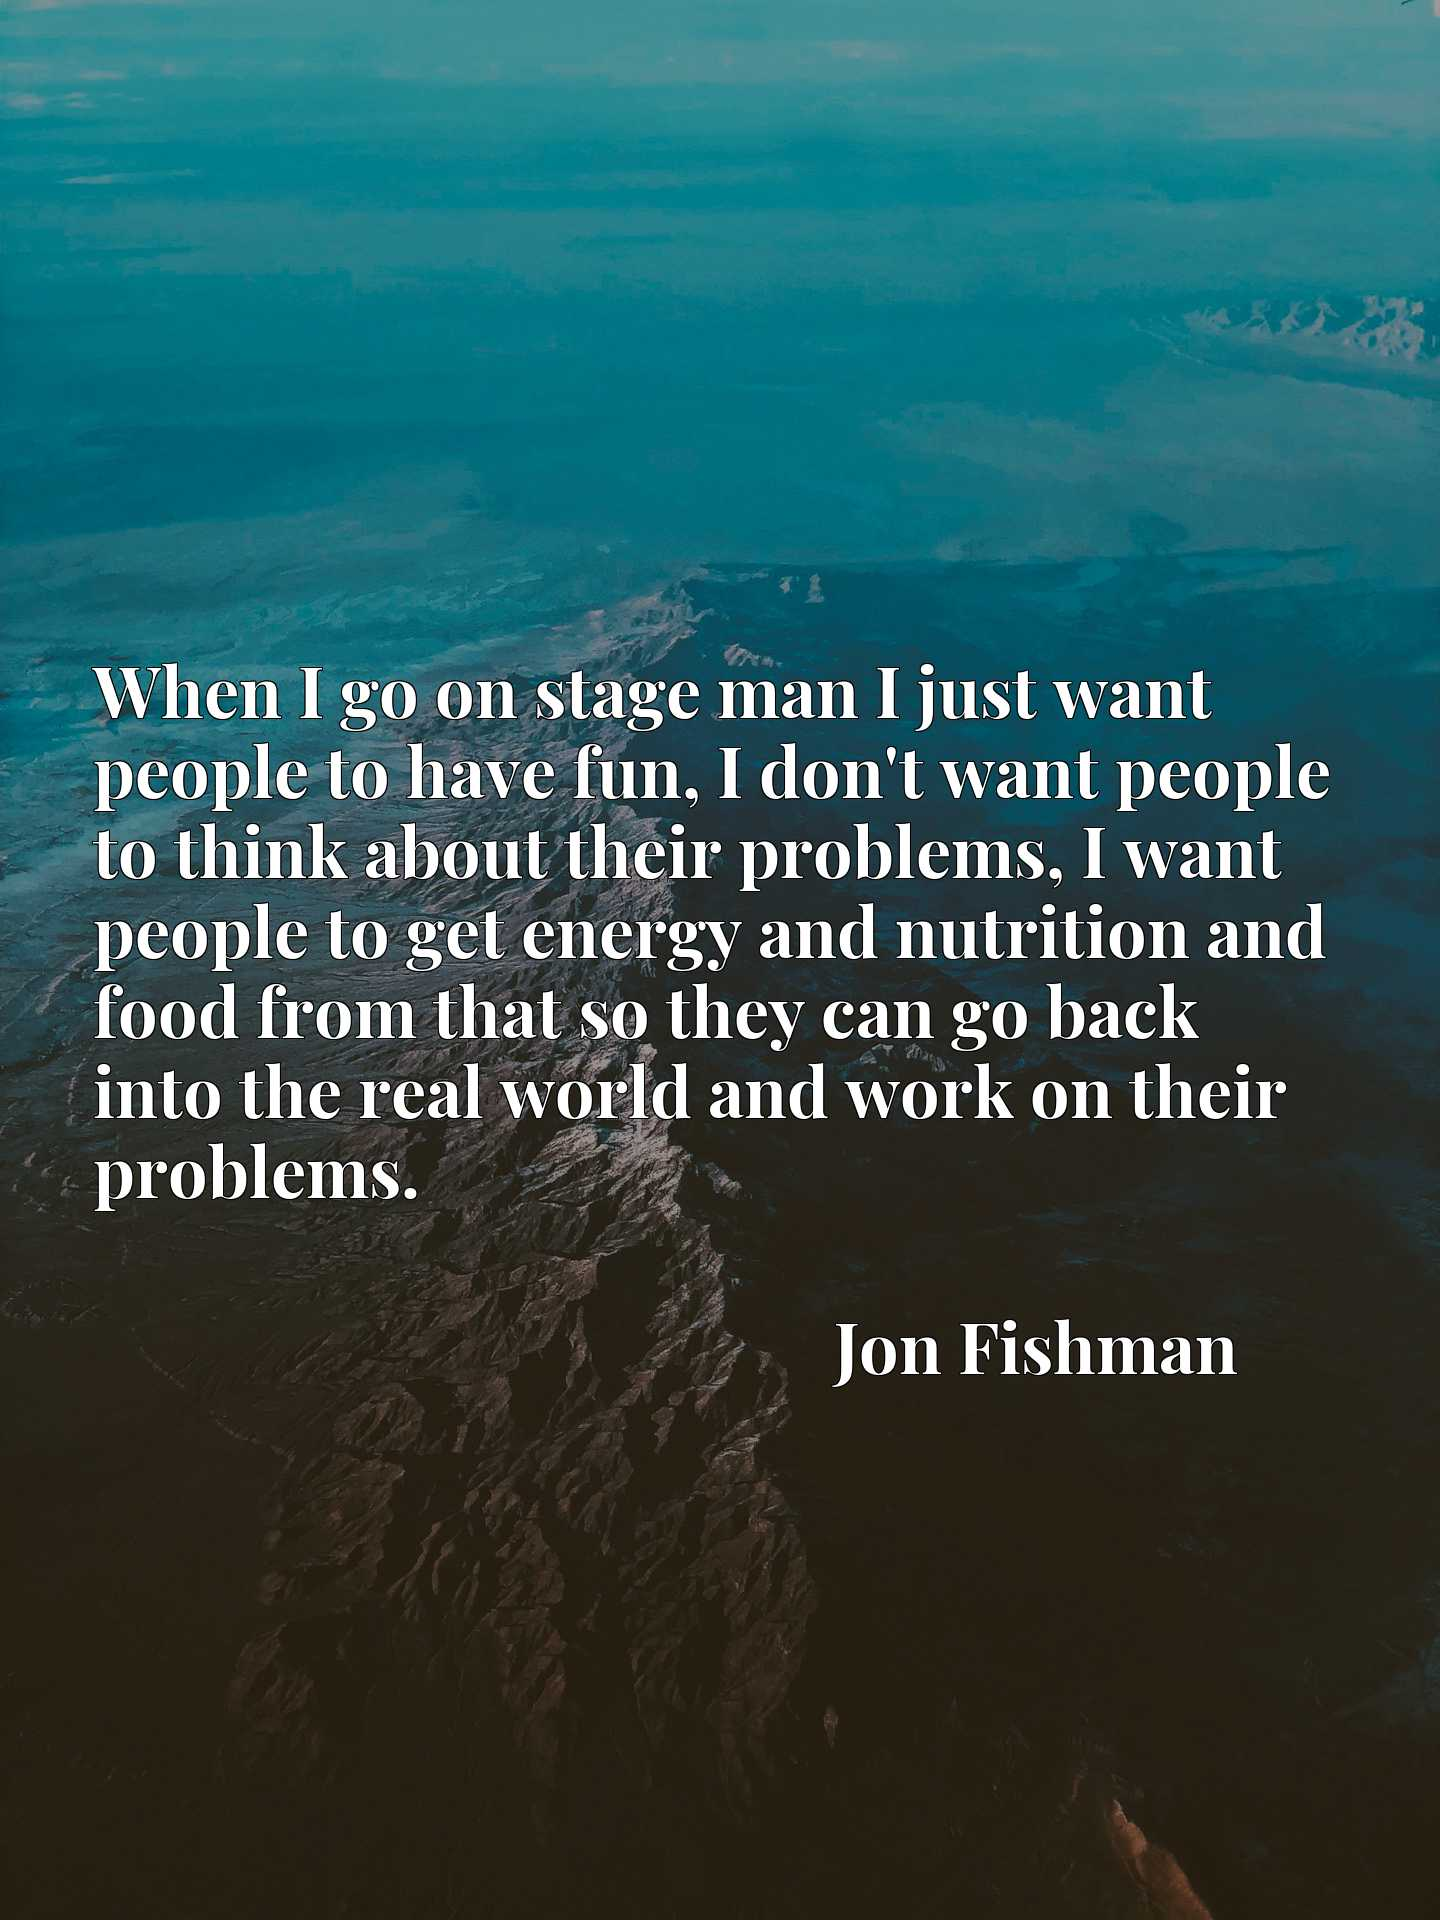 When I go on stage man I just want people to have fun, I don't want people to think about their problems, I want people to get energy and nutrition and food from that so they can go back into the real world and work on their problems.